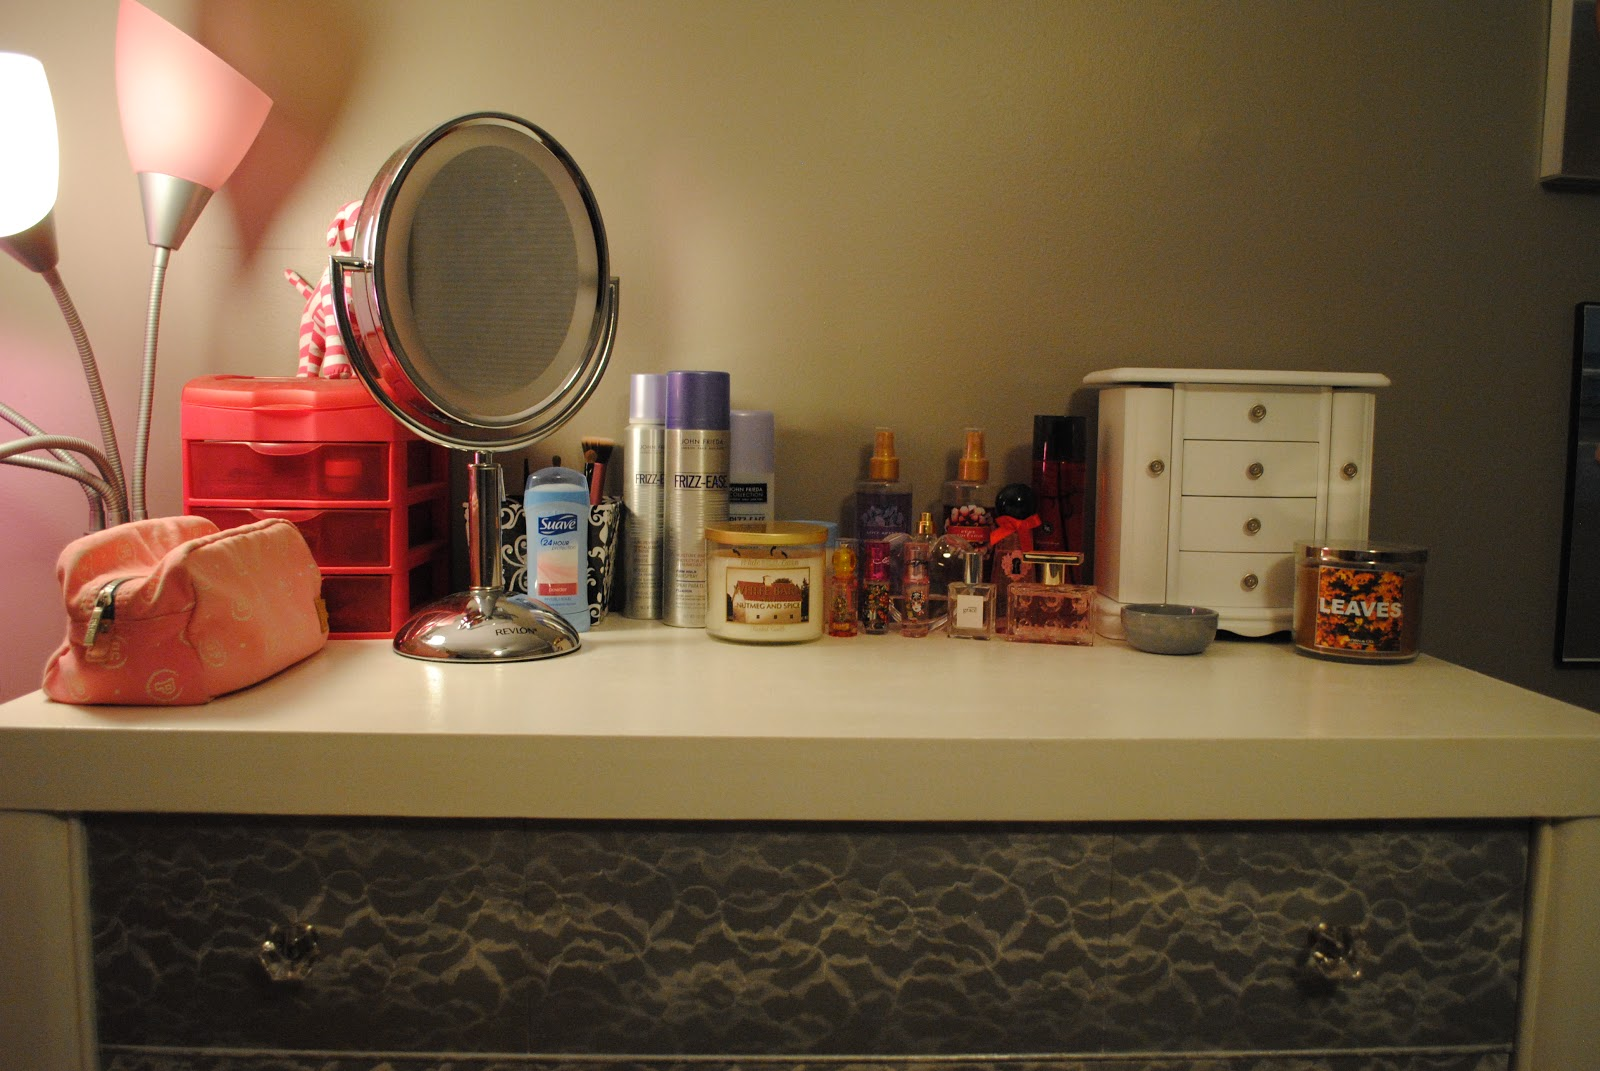 Jan 20,  · An organized dresser top is not only more functional, but it can also reflect your personality and style. Clean and Downsize Start a dresser makeover by clearing everything off the top.